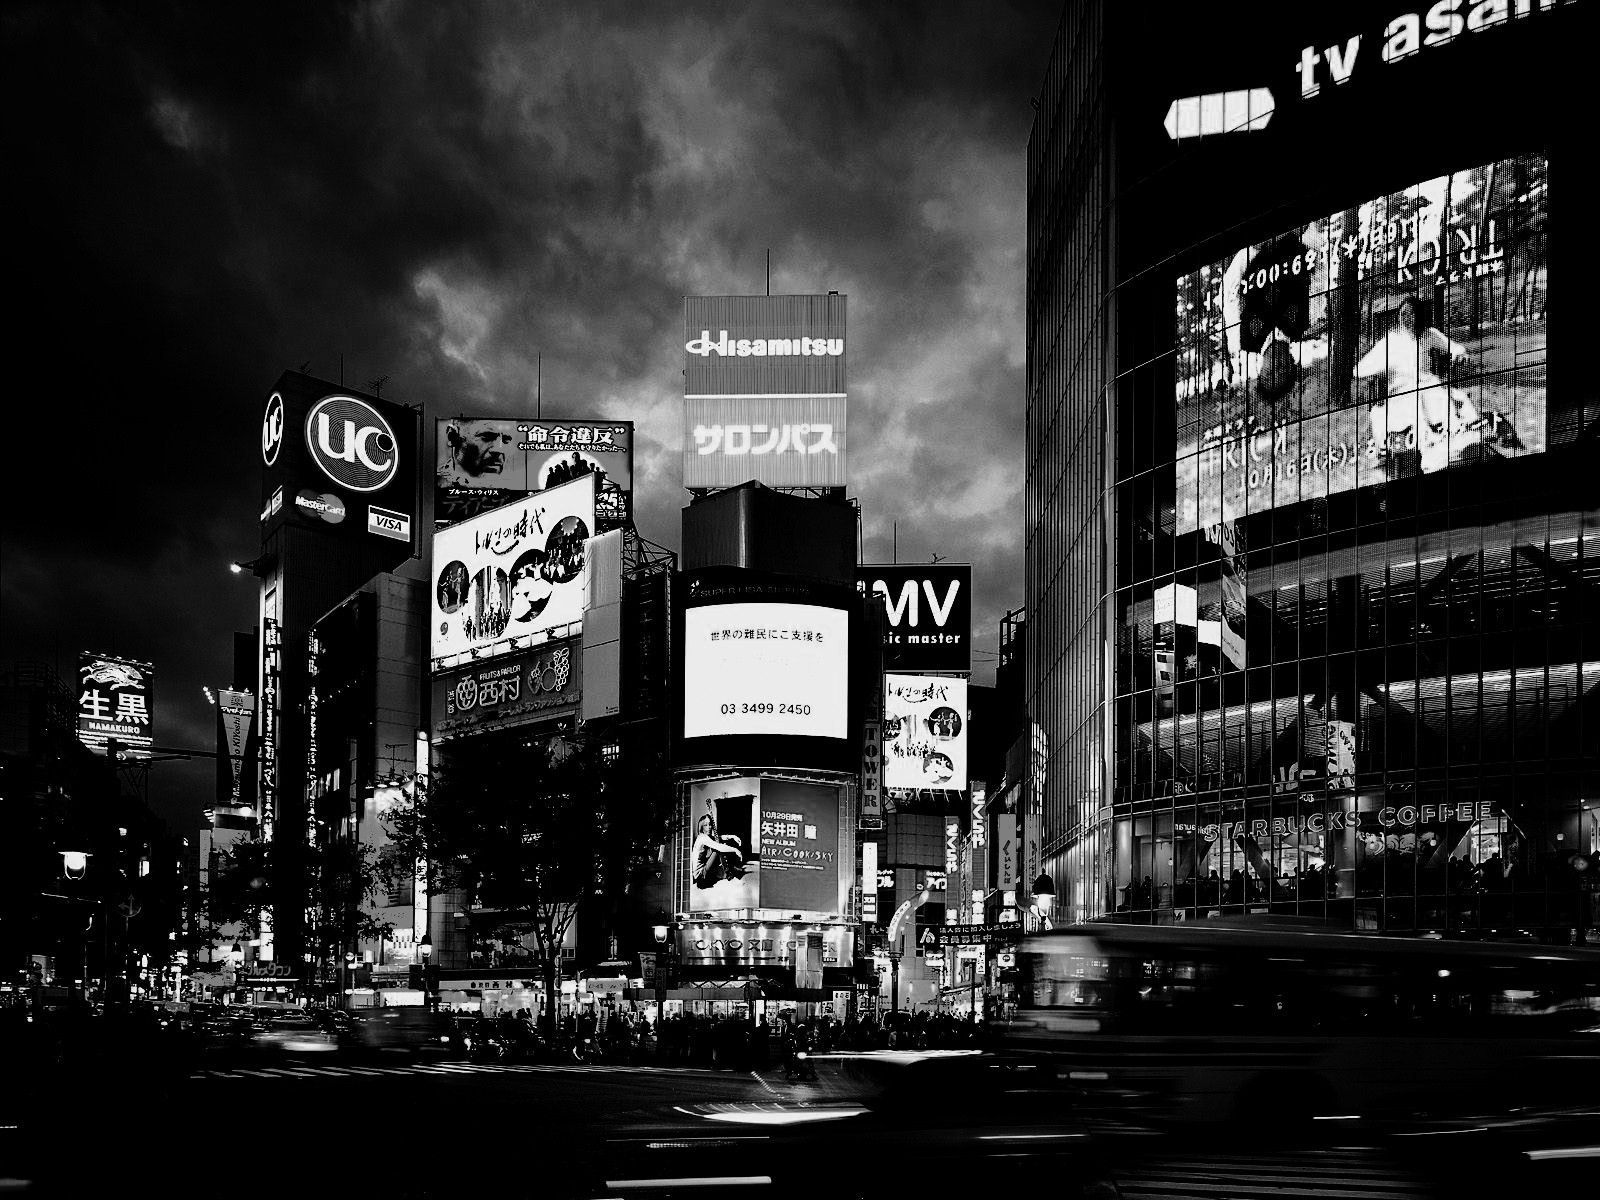 Tokyo Black And White Wallpapers Top Free Tokyo Black And White Backgrounds Wallpaperaccess tokyo black and white wallpapers top